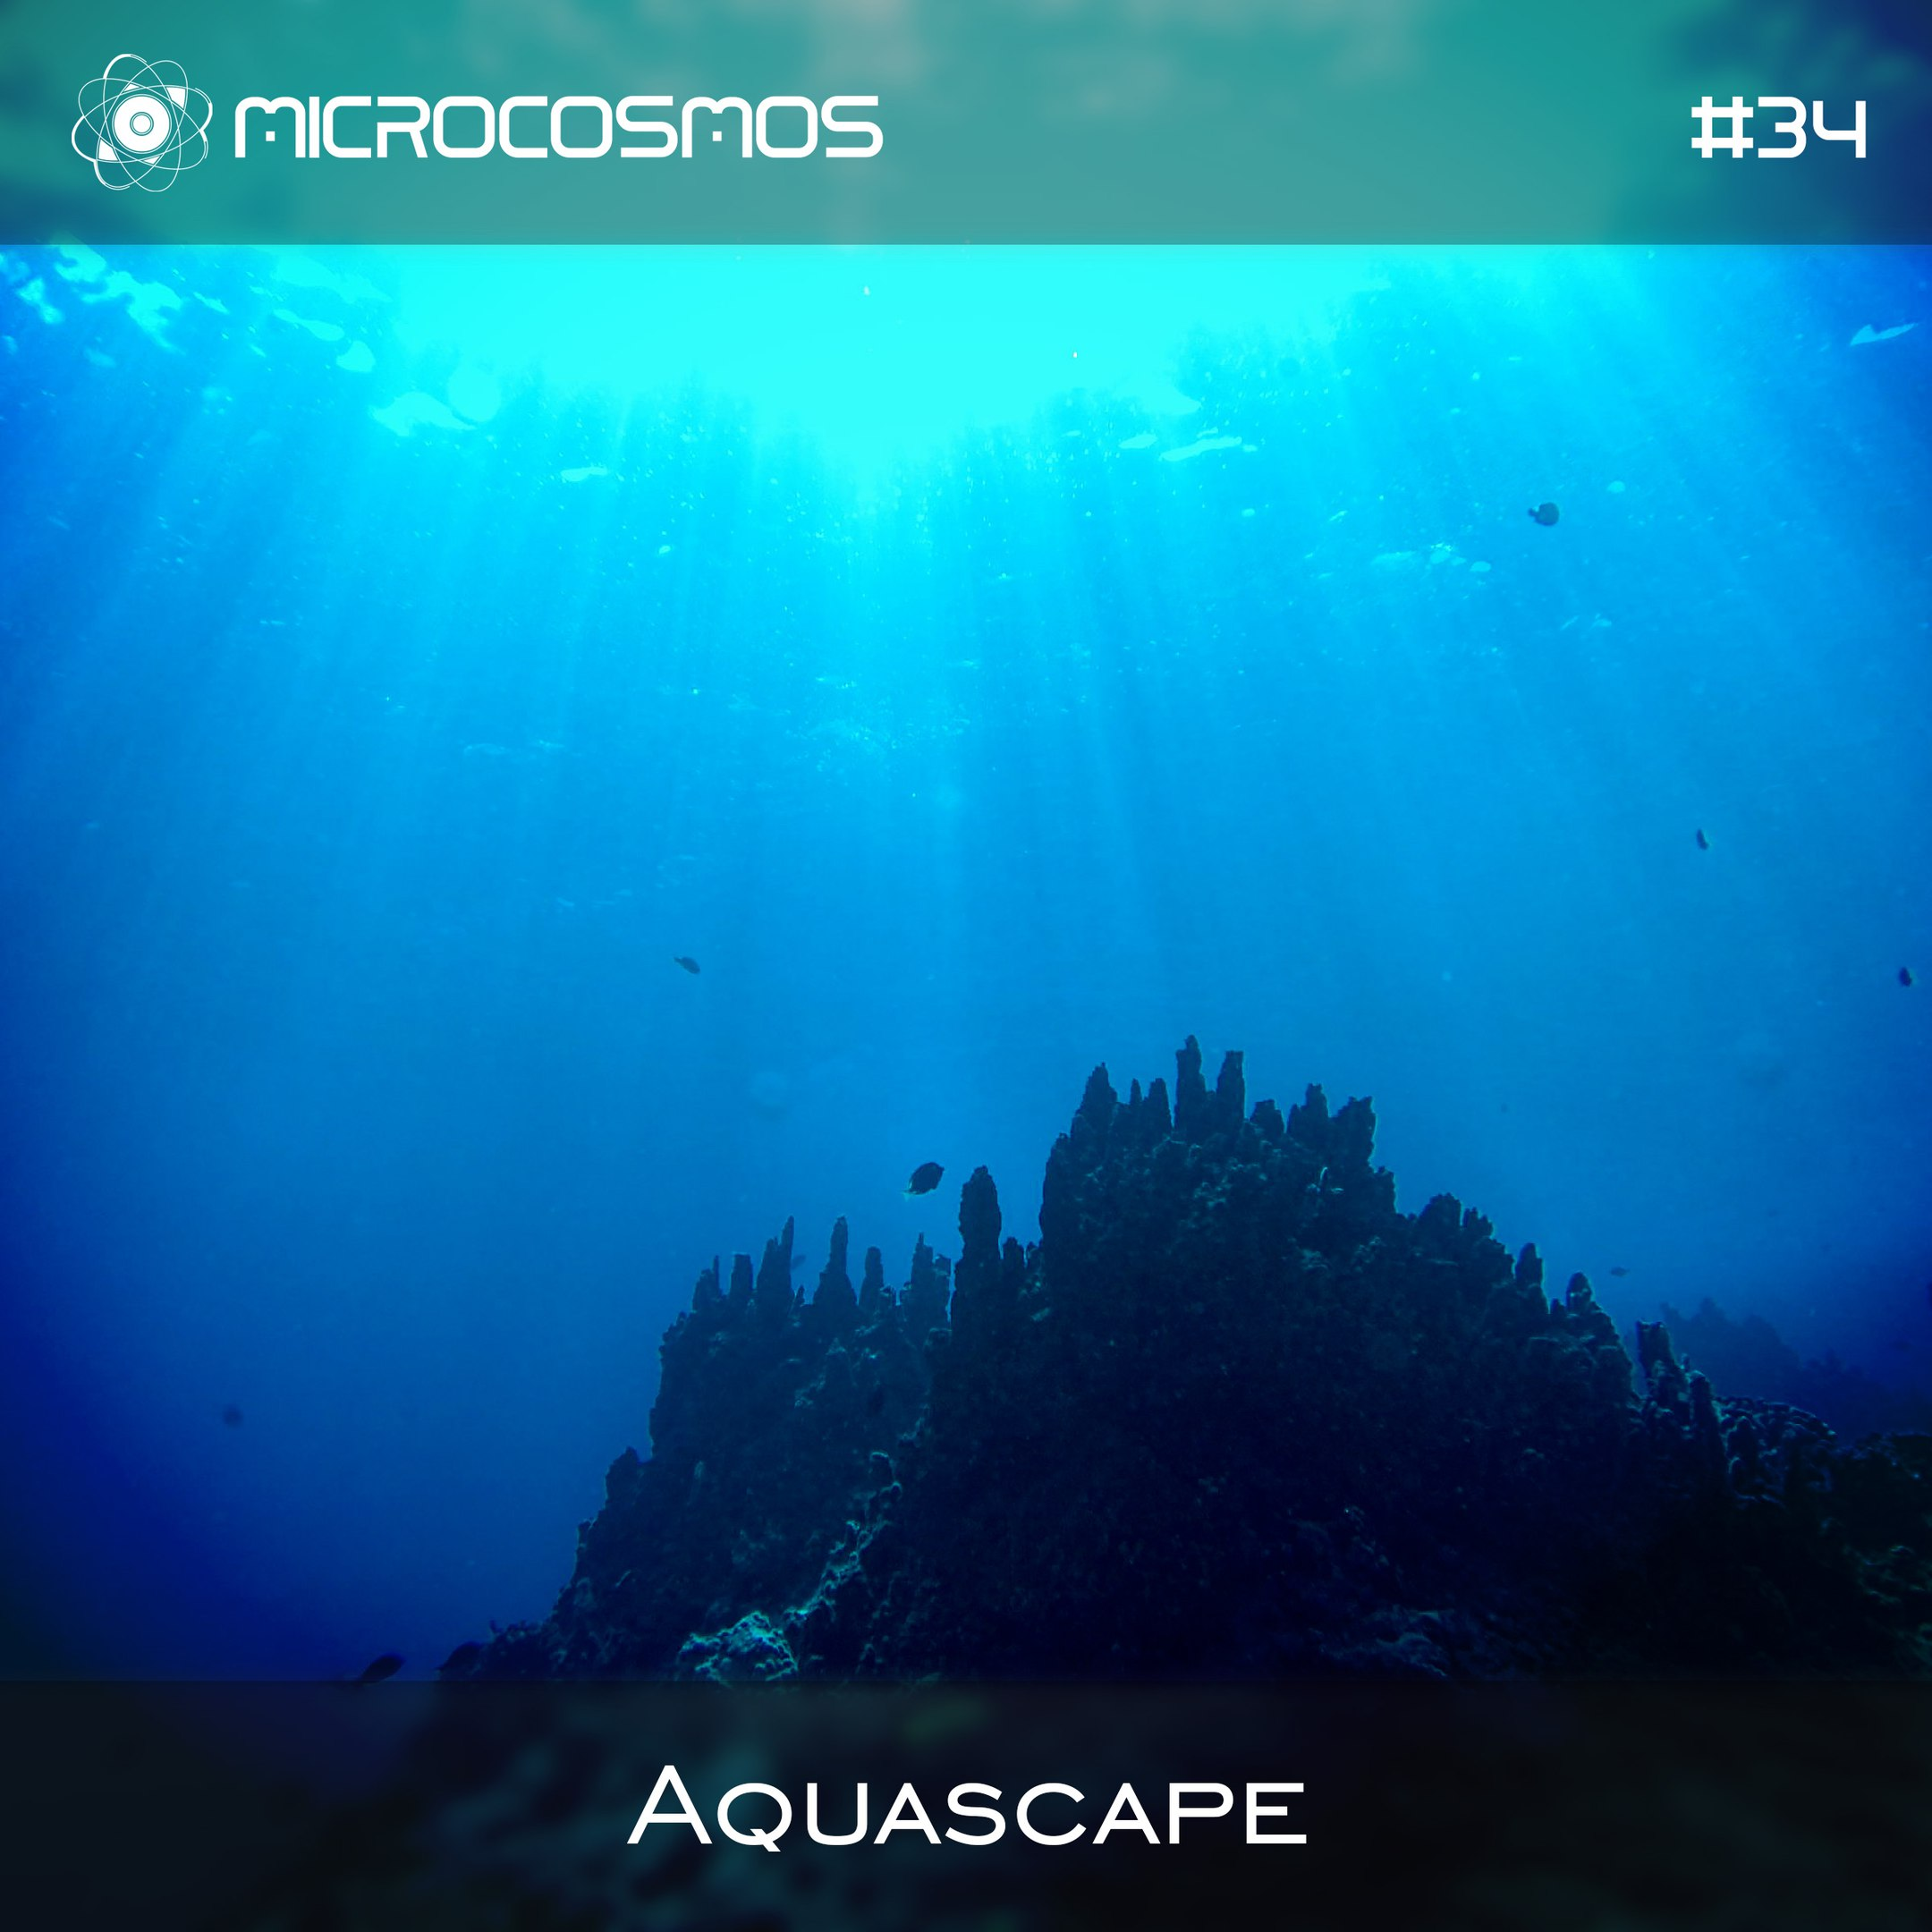 Aquascape — Microcosmos Chillout & Ambient Podcast 034